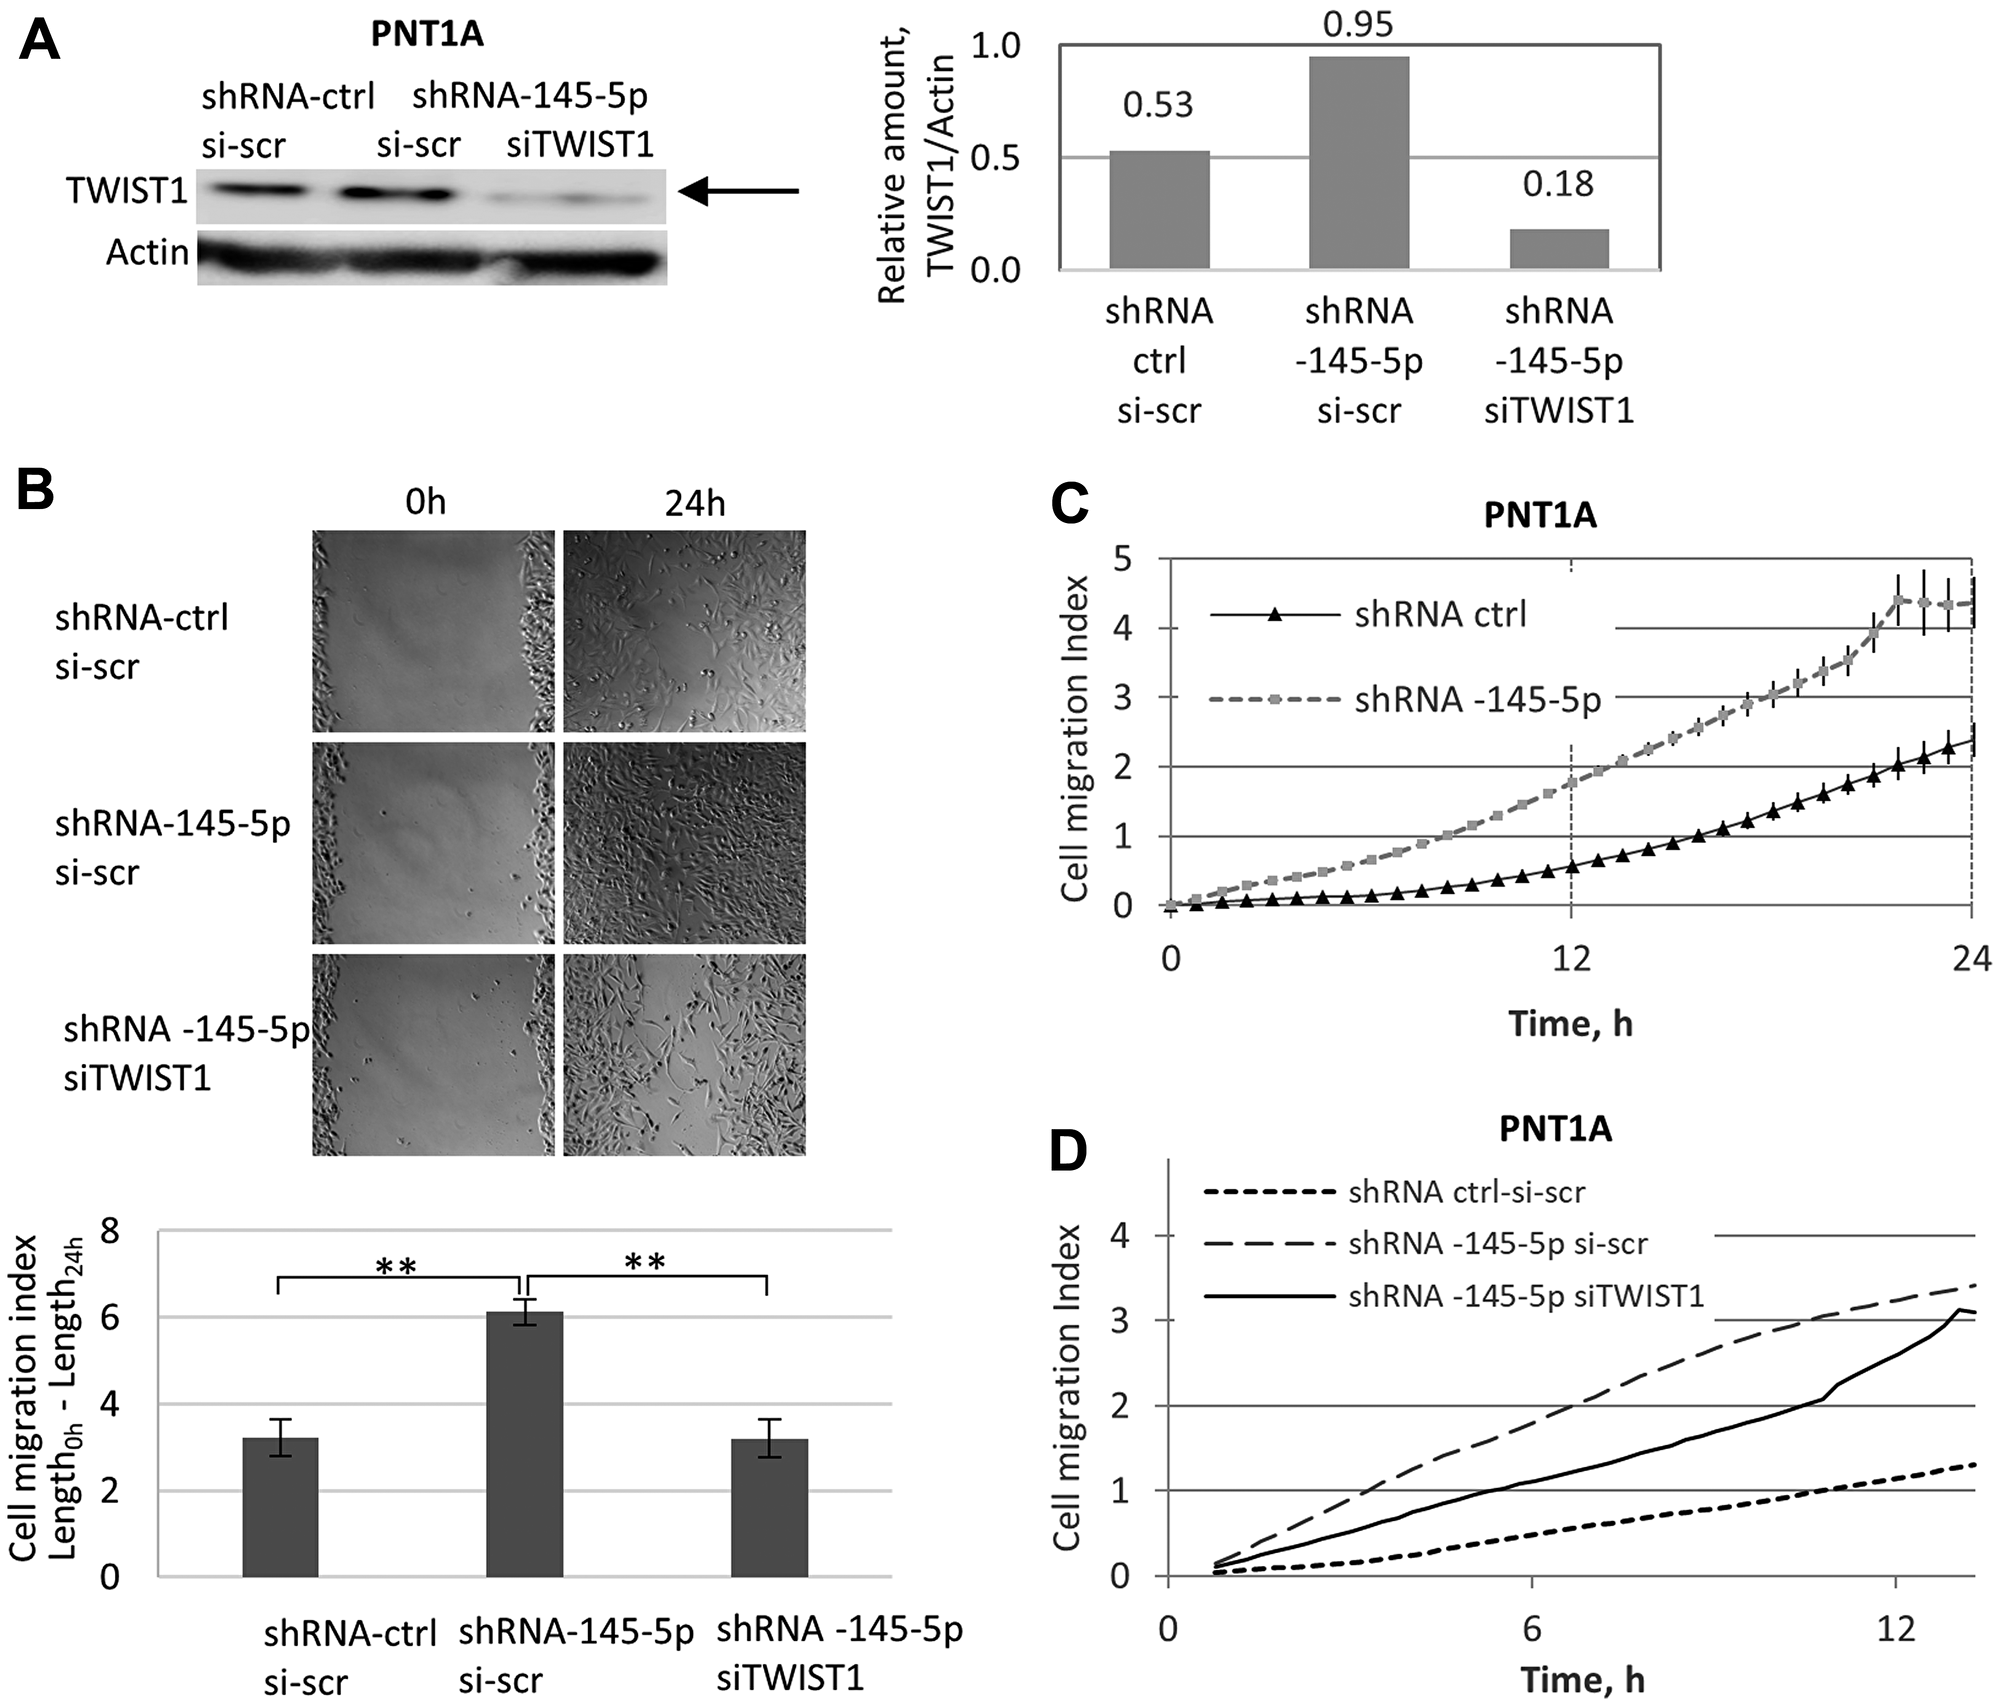 Opposing roles of shRNA-145-5p and TWIST1 siRNA on PNT1A cell migration.